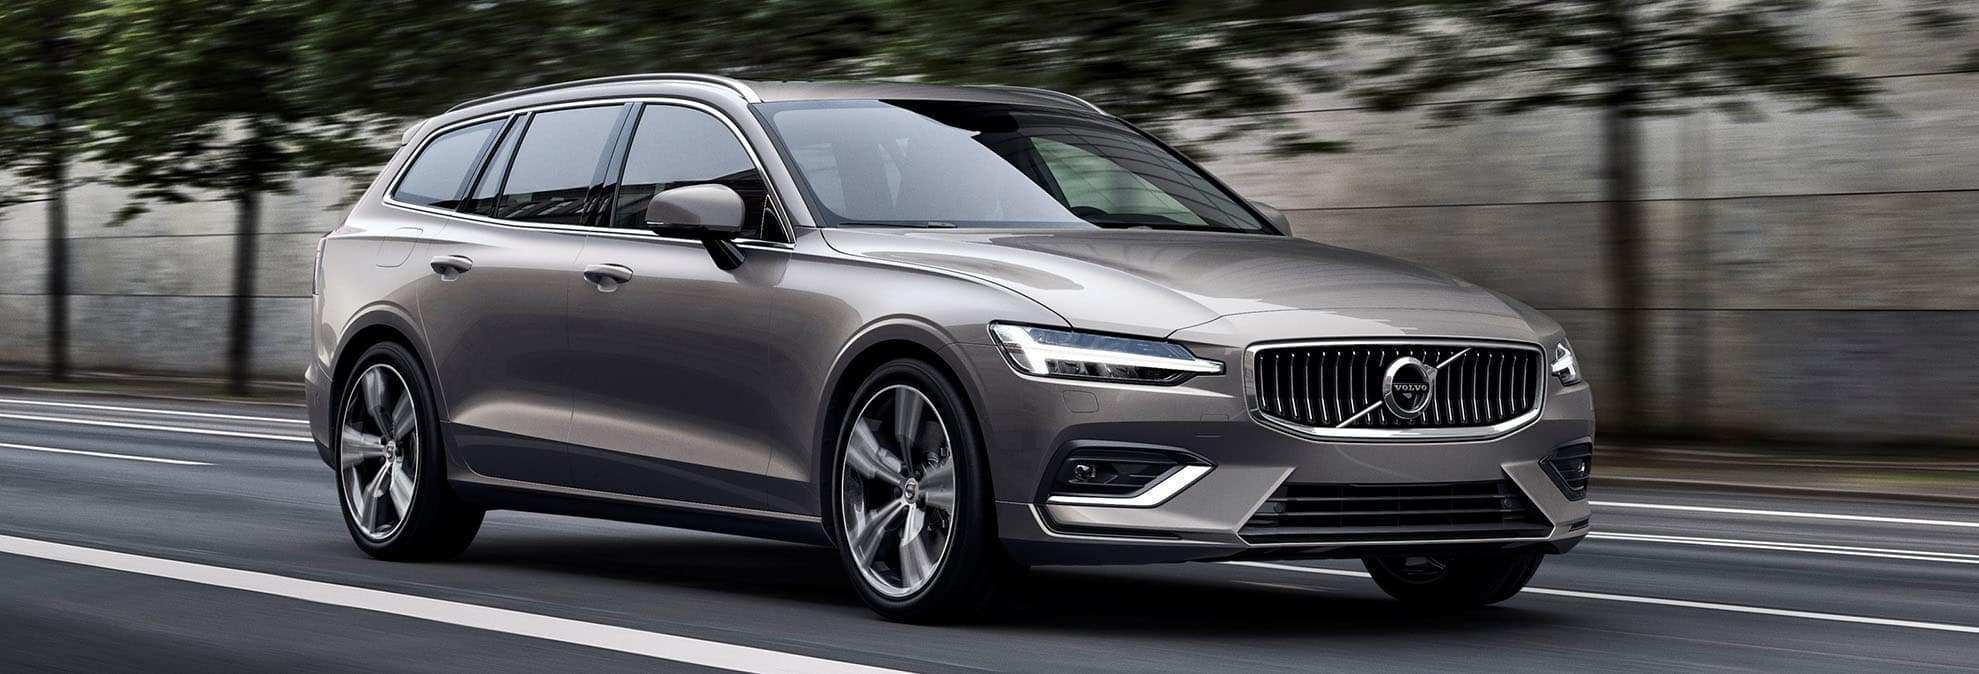 94 All New 2019 Volvo Station Wagon Exterior and Interior by 2019 Volvo Station Wagon